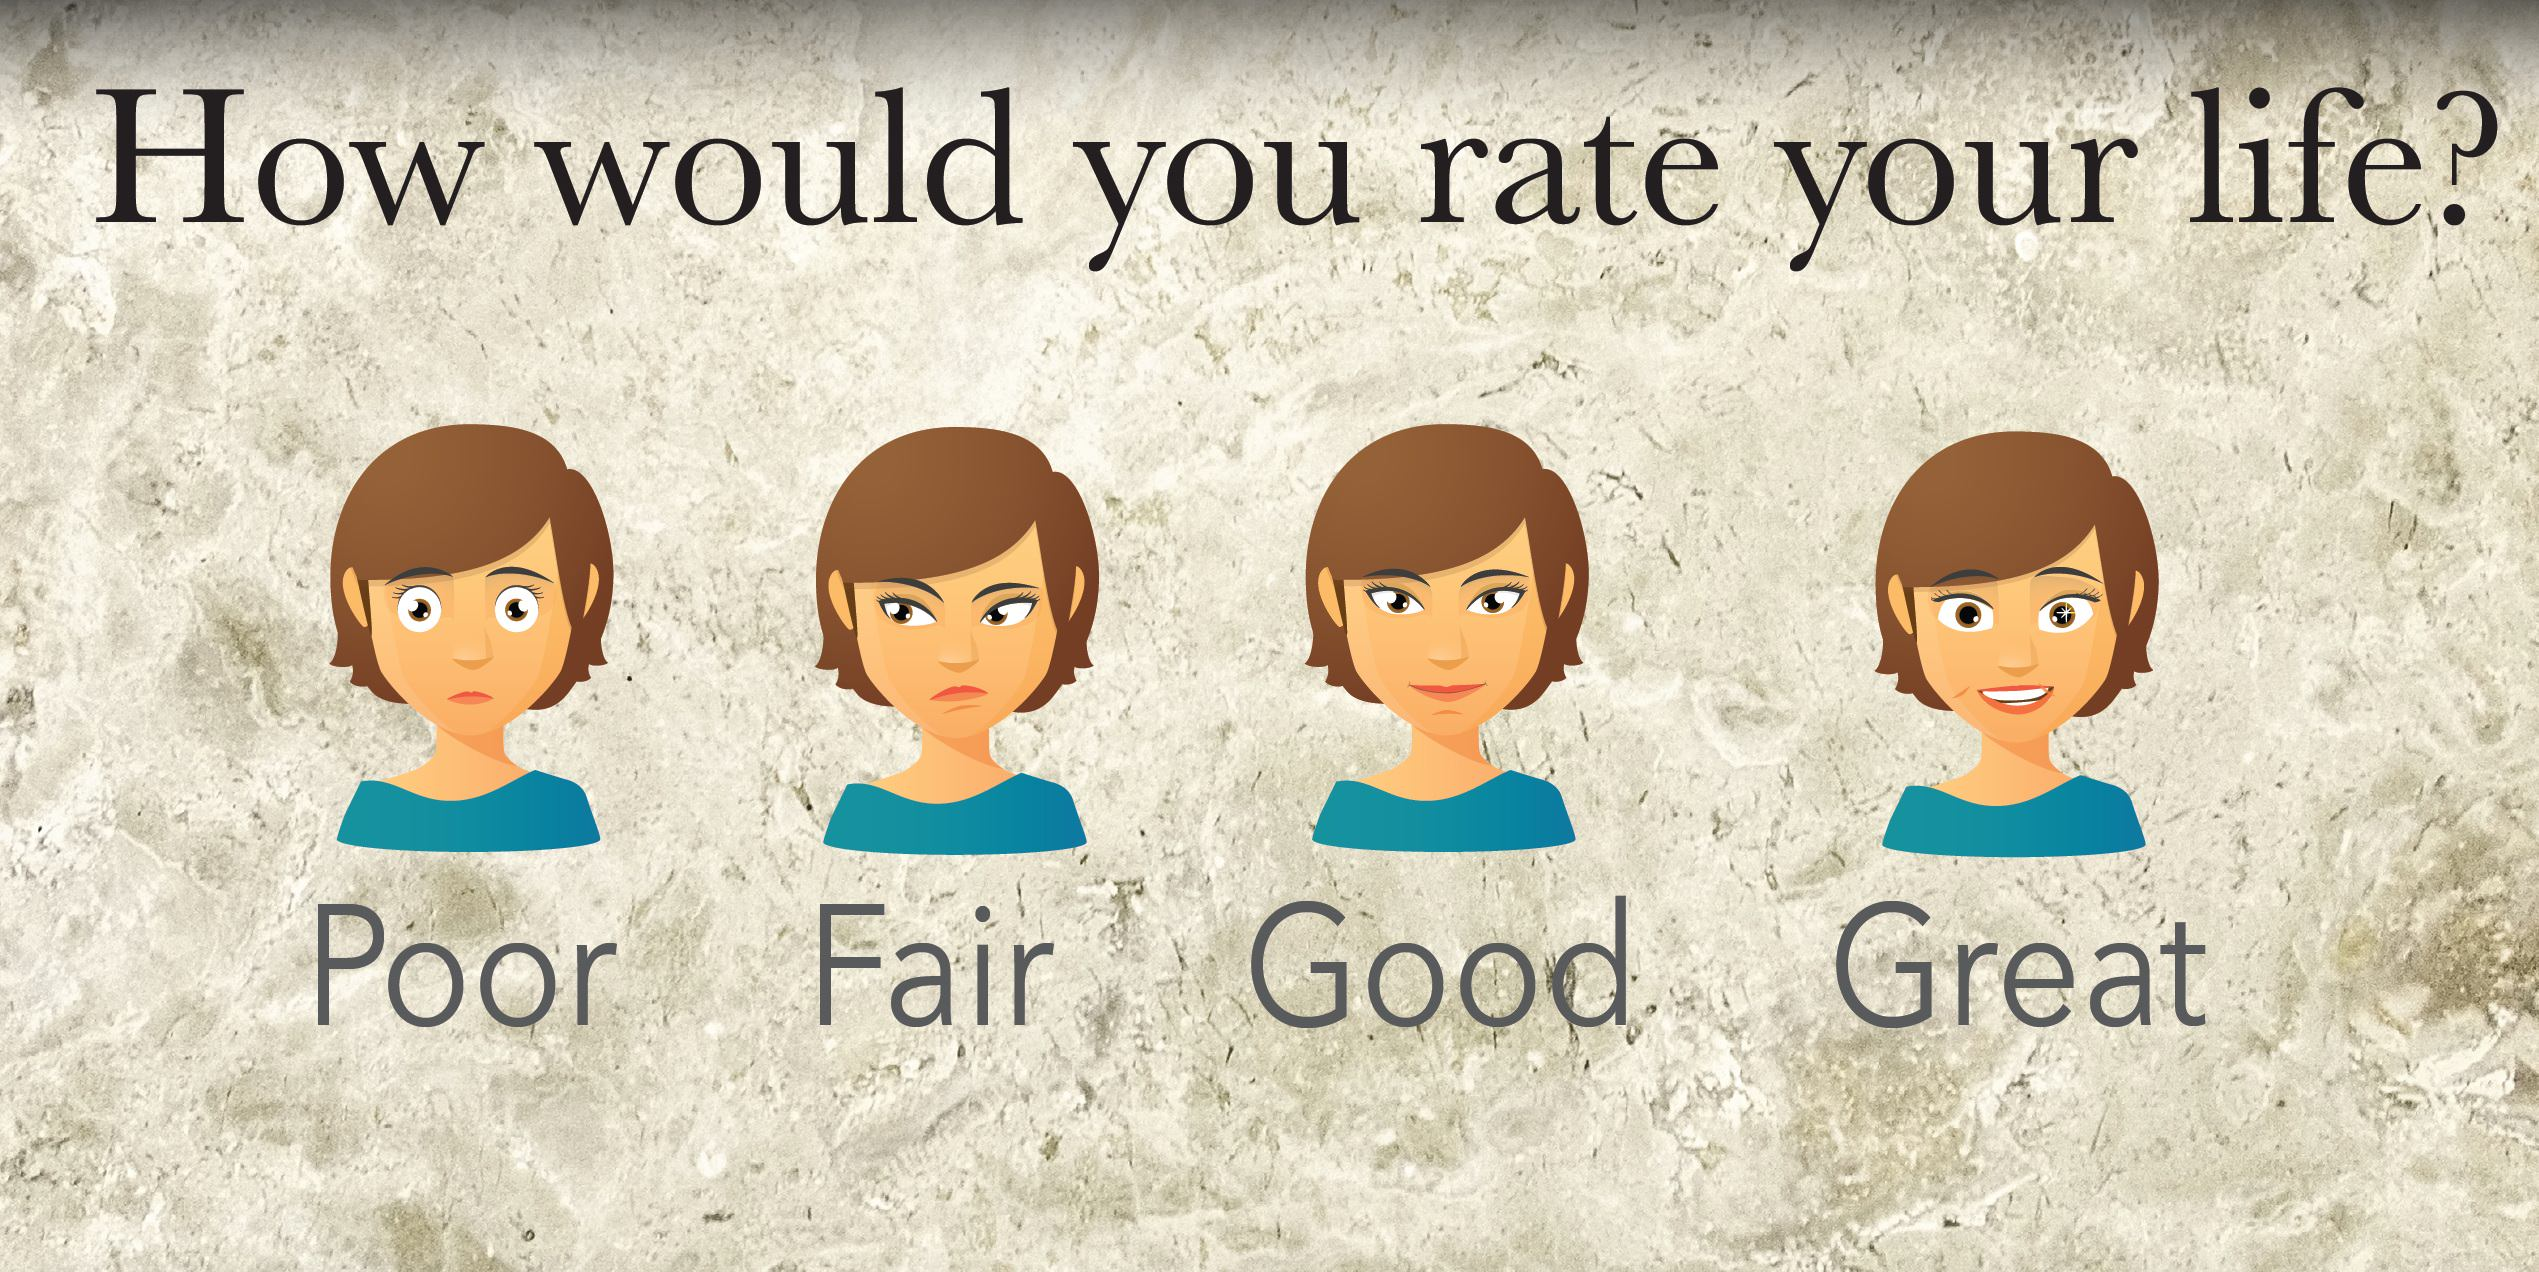 How would you rate your life?